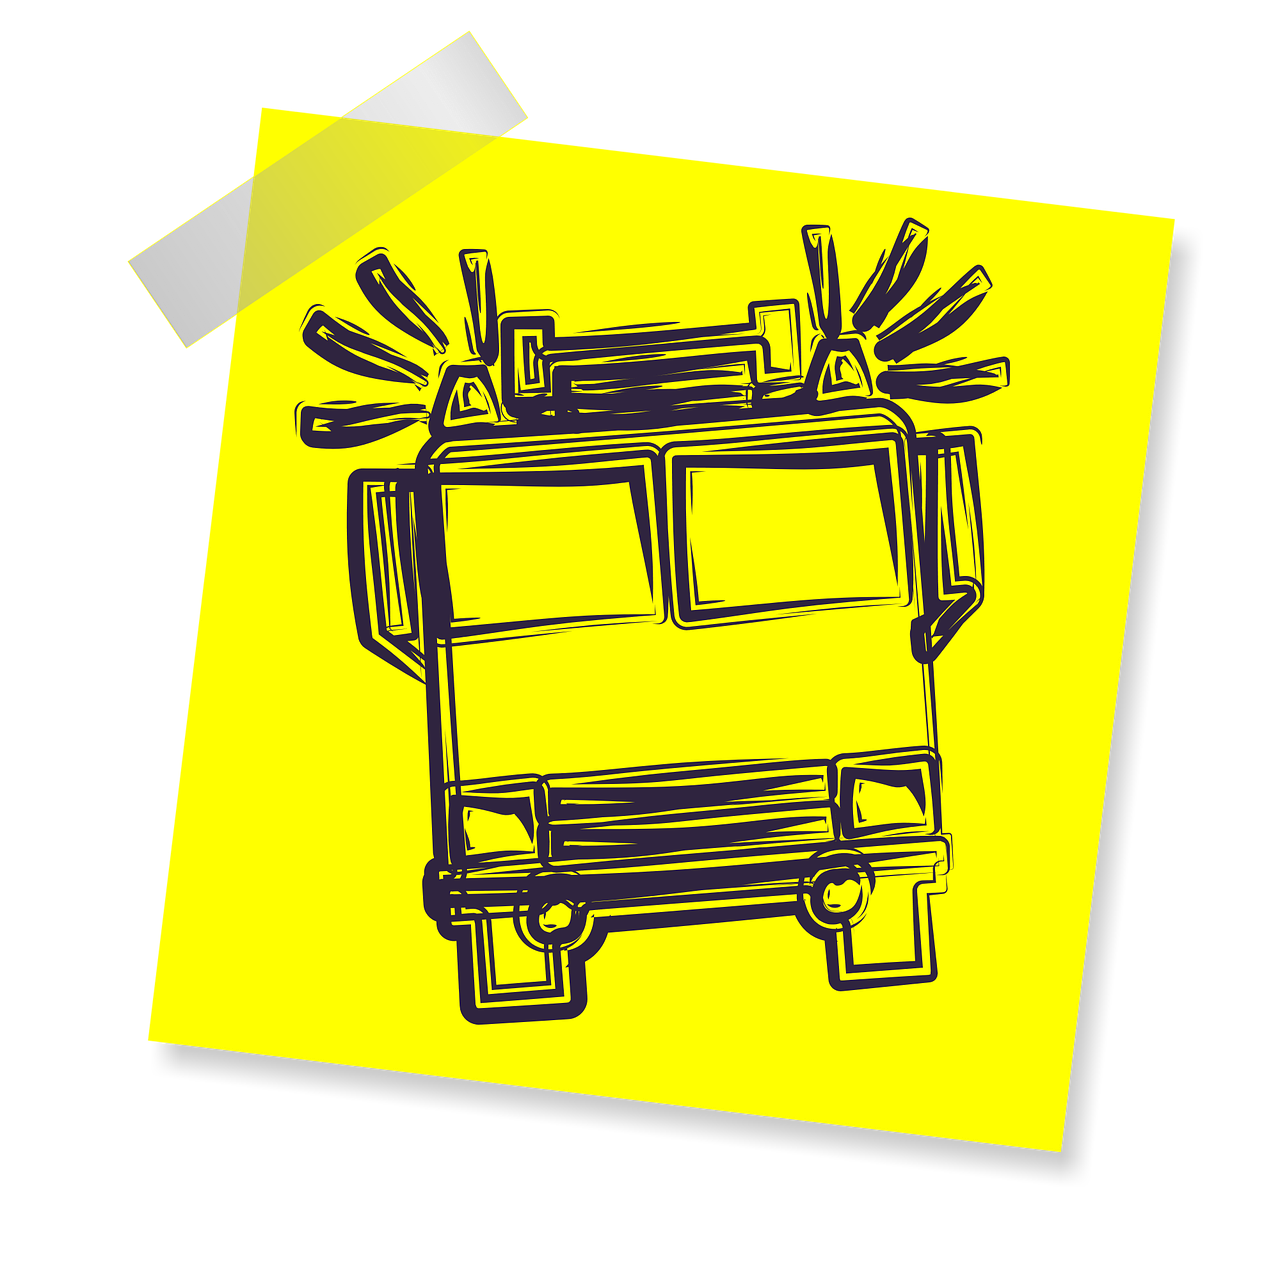 Housekeeping clipart custodial. Discounted rents for local